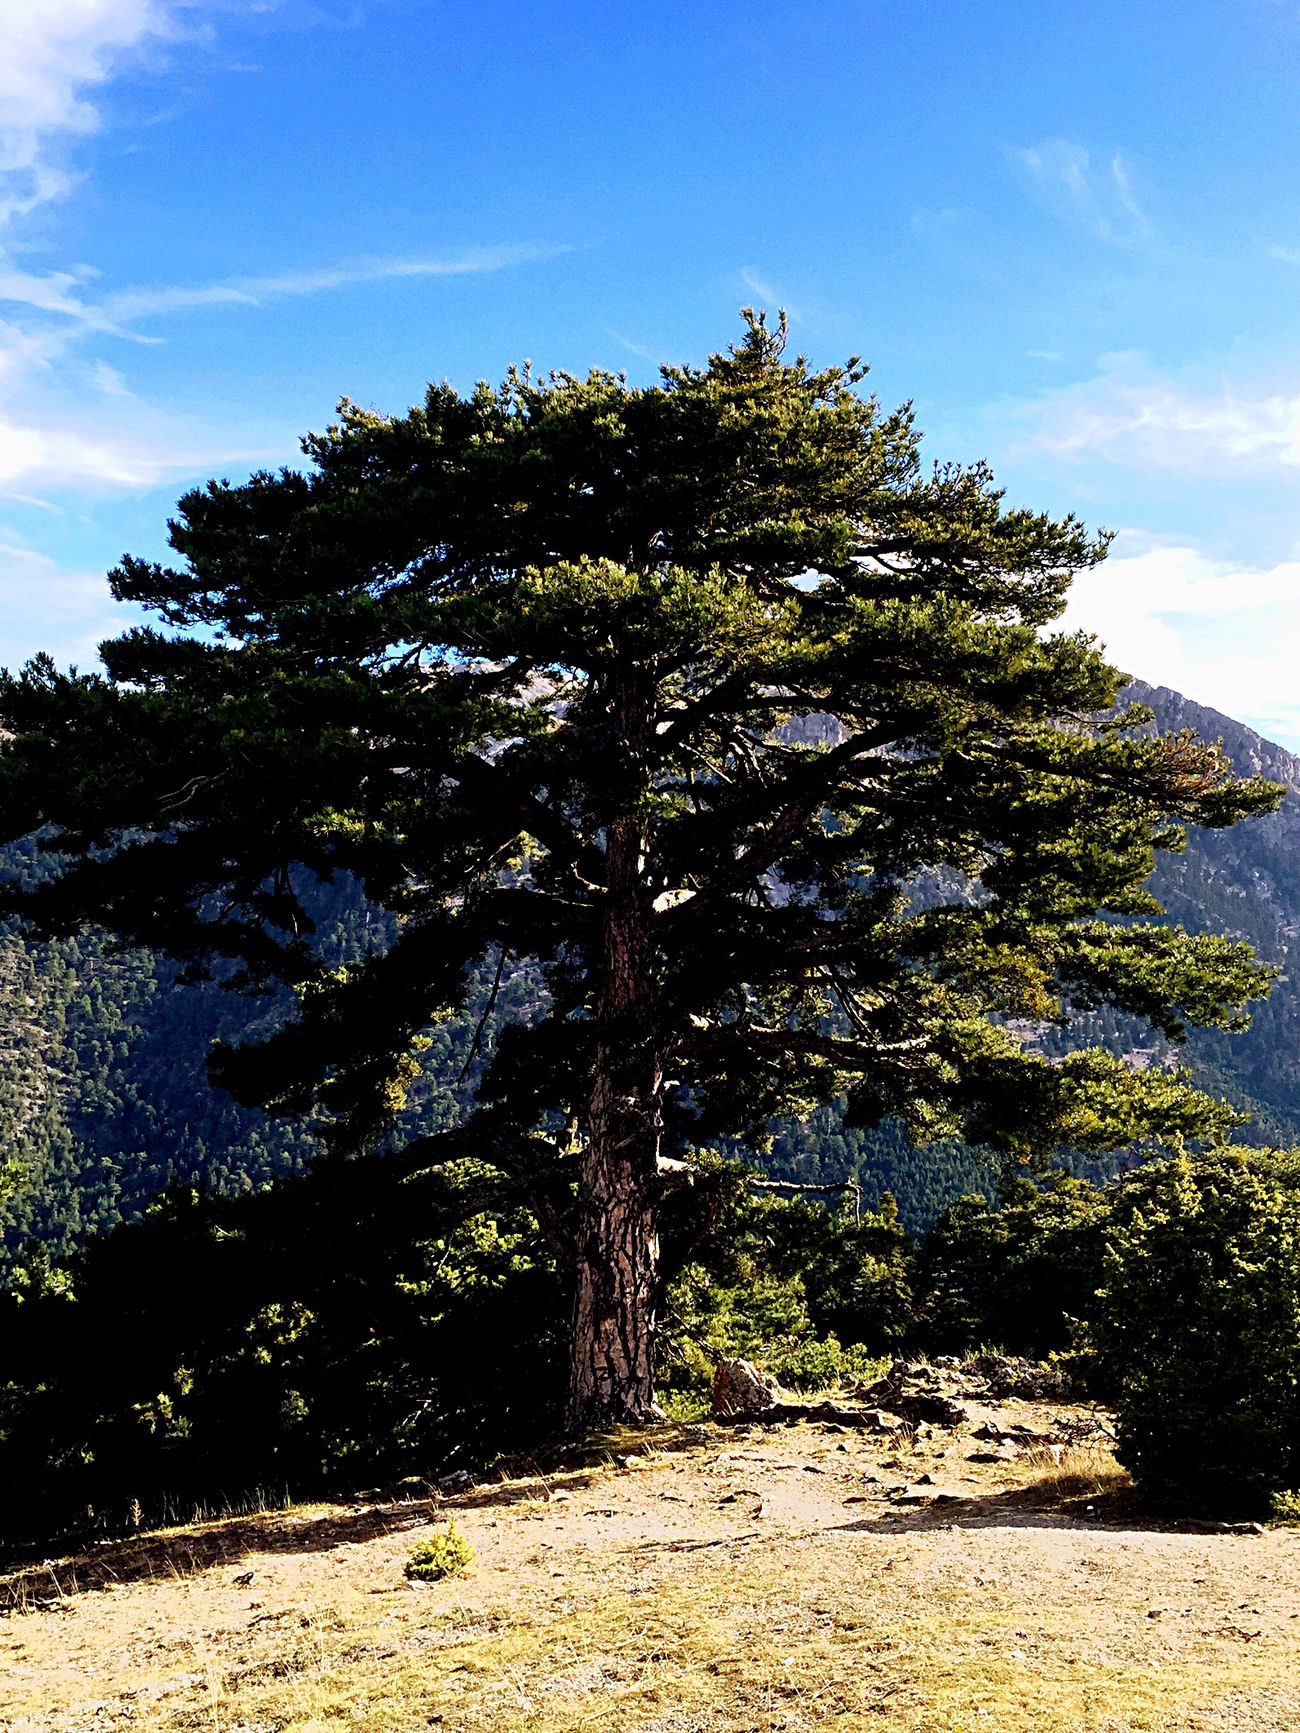 Hug A Tree No Ordinary Beauty Mountain View Walking Around AmazingGreece Mount Zireia